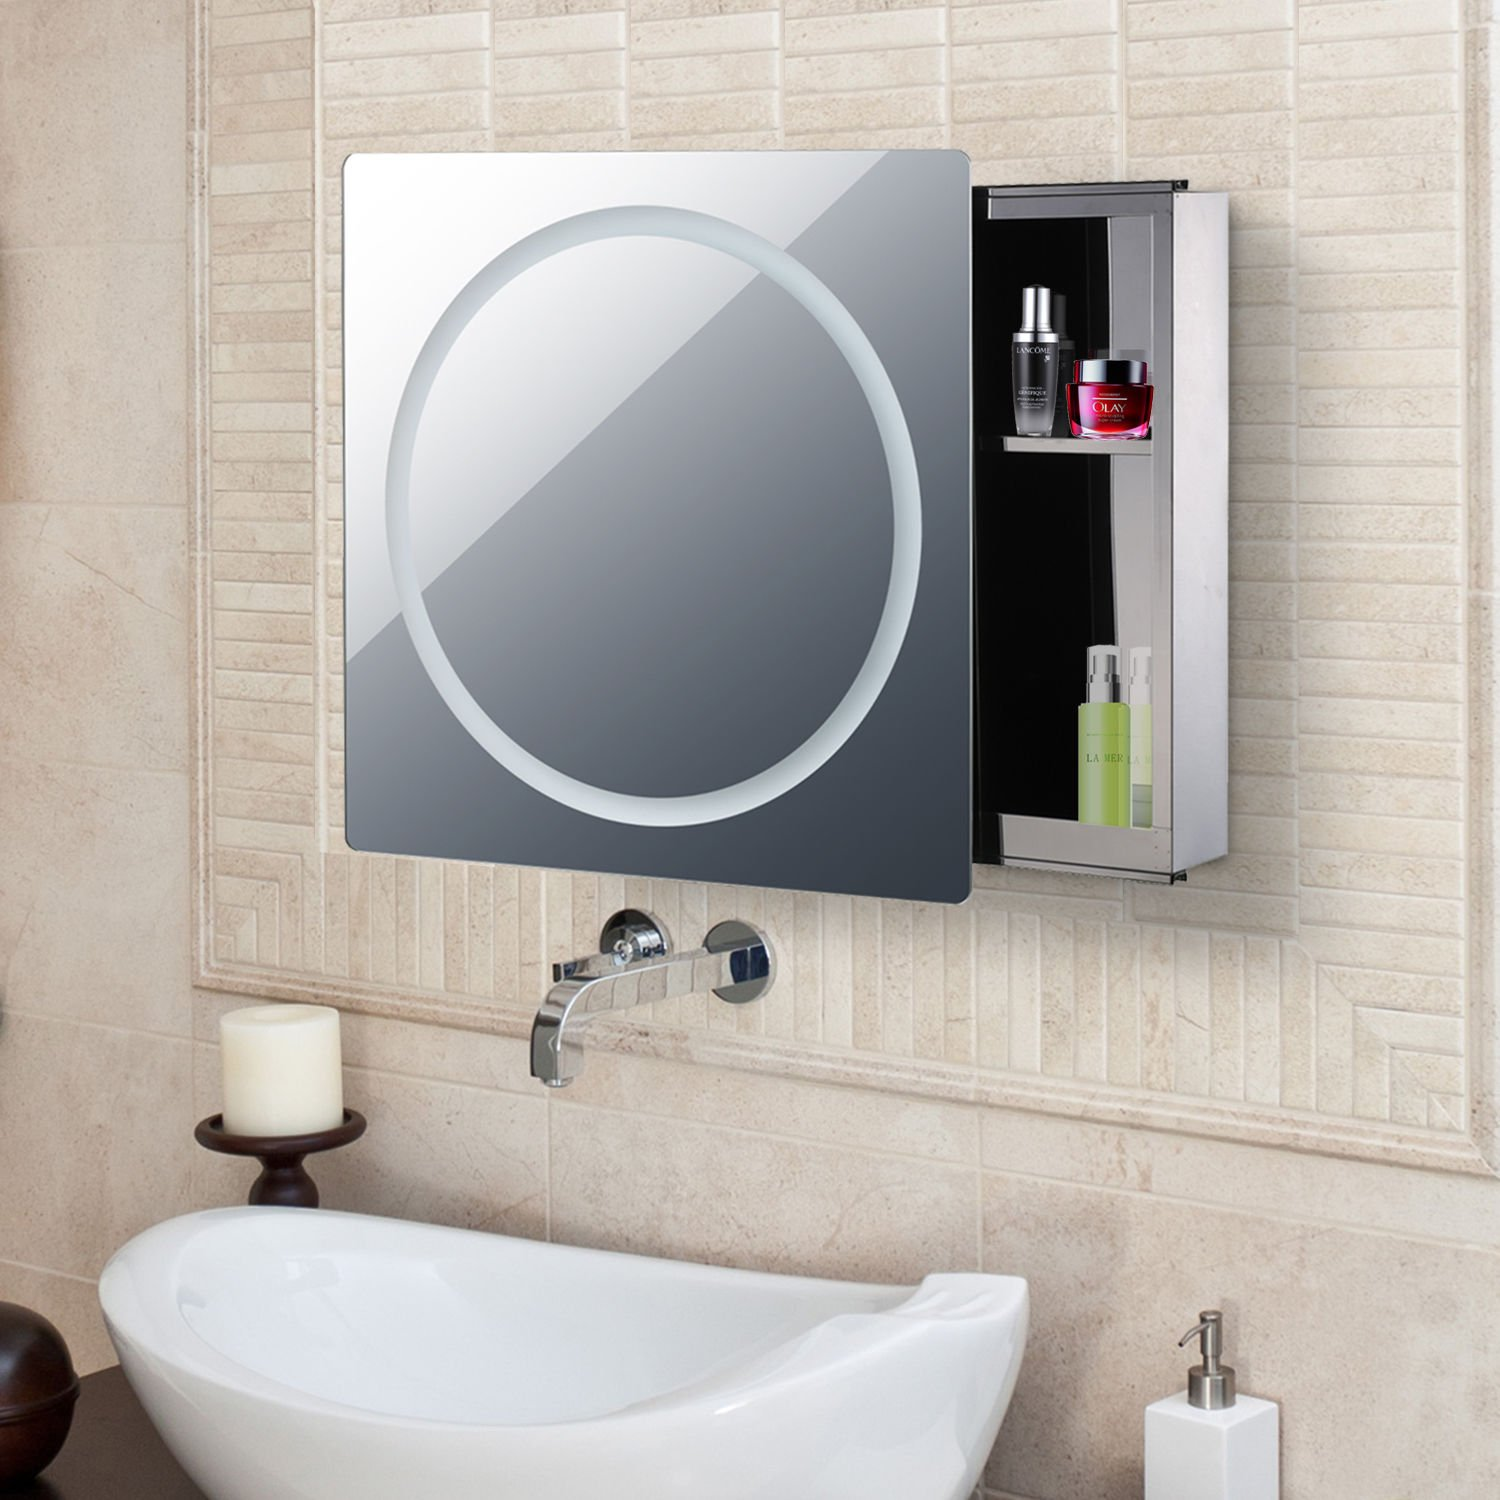 Generic DYHP-A10-CODE-4577-CLASS-8-- Steel Gliding Stainless ng St 24''x24'' Rounded LED athroom Cabinet Mirror LED C Bathroom 2Level '' Round --NV_1008004577-CXL-US10